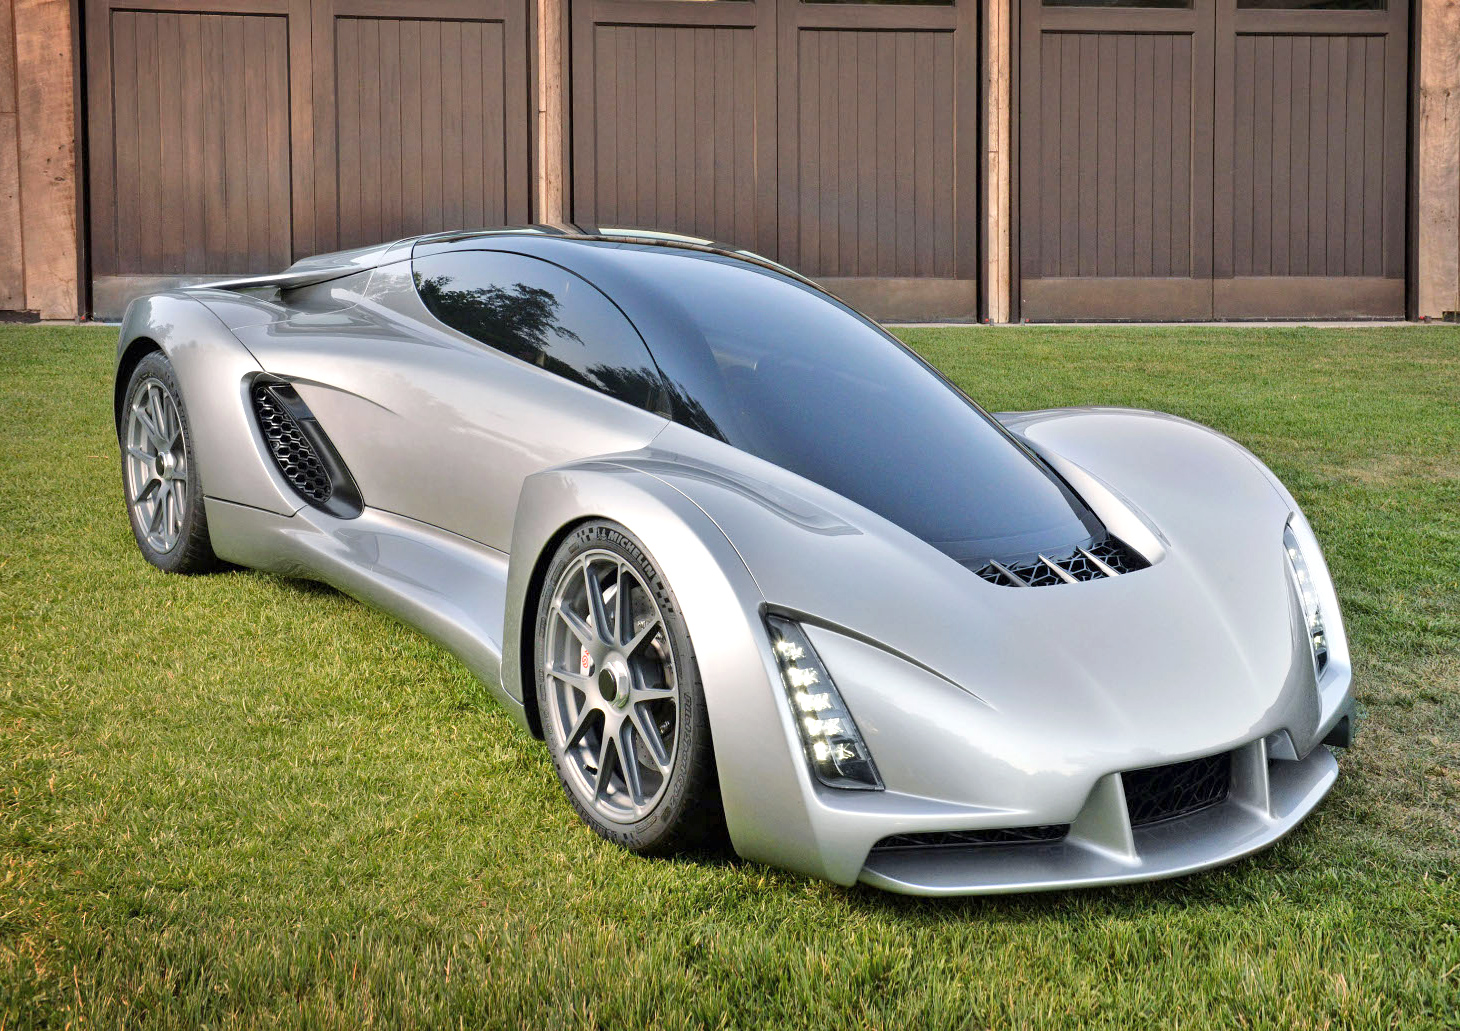 World's first 3D-printed supercar is one of the greenest cars around